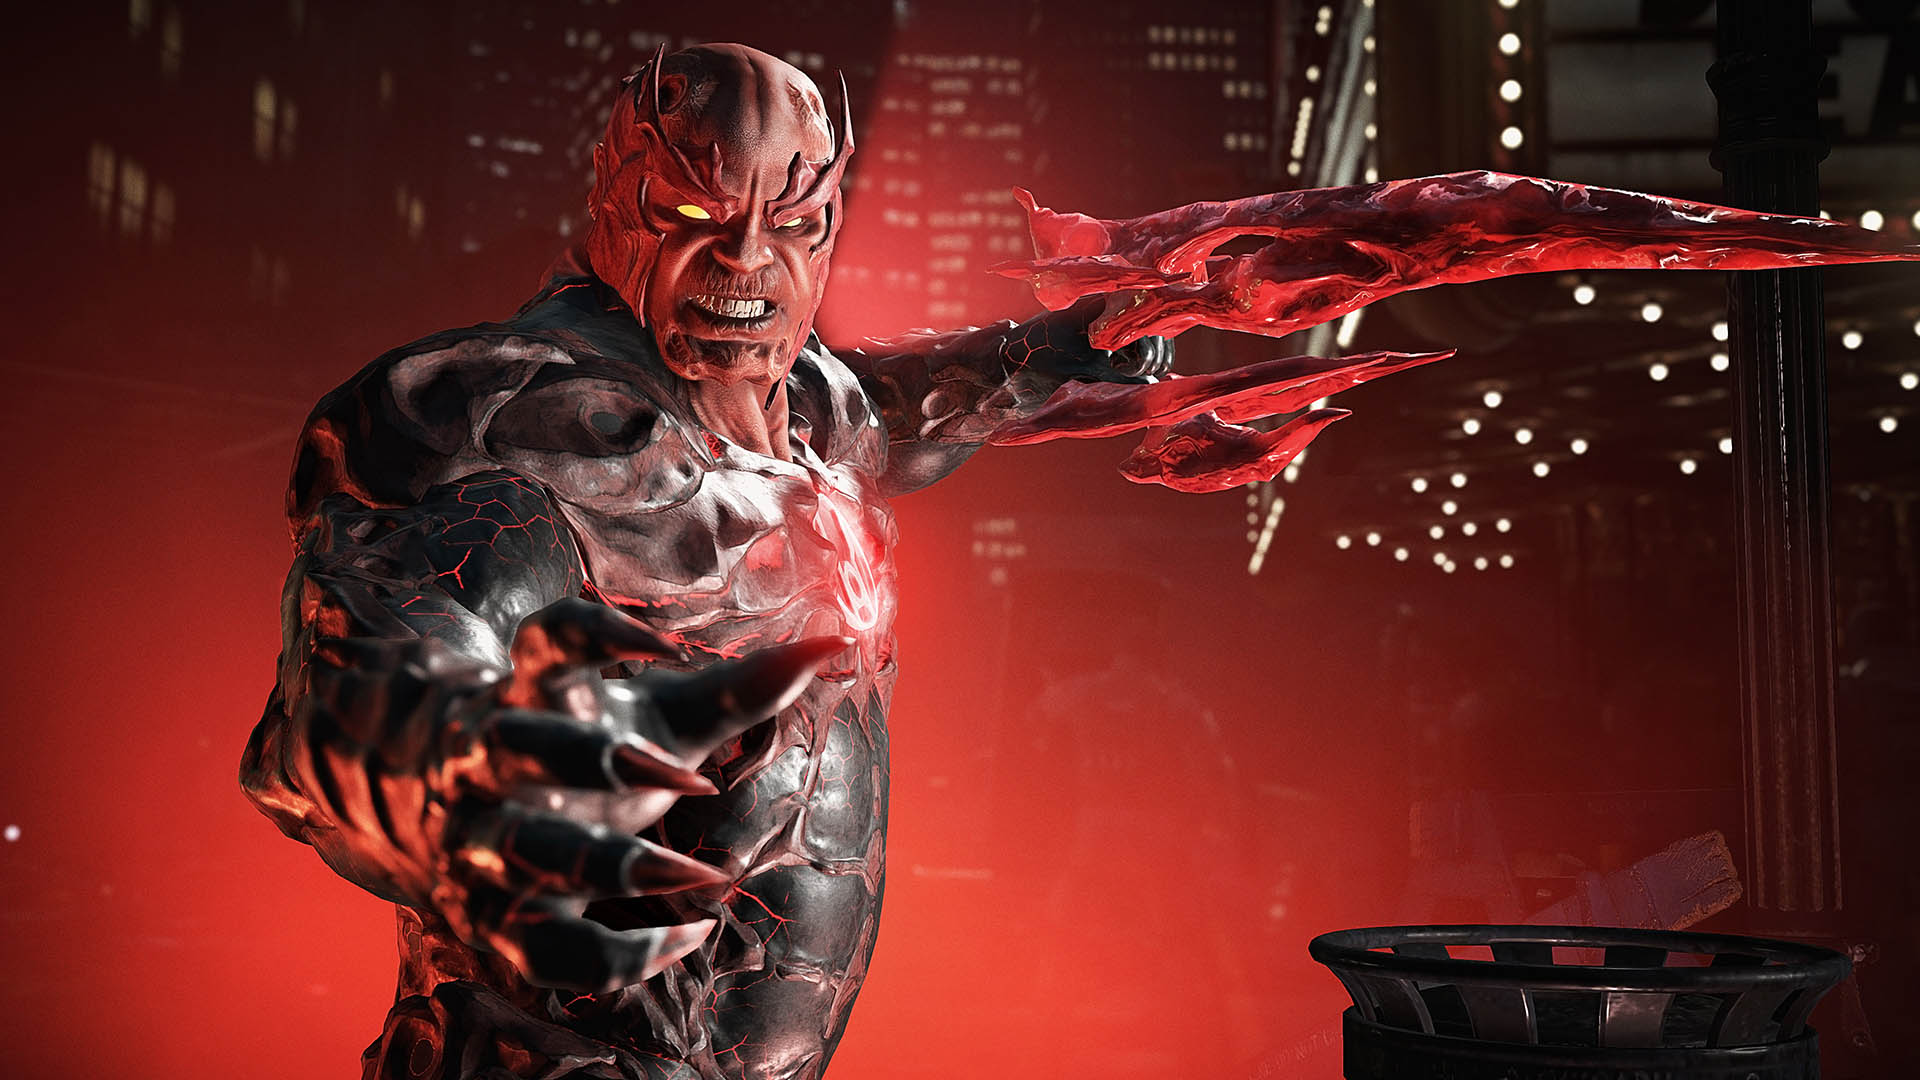 Injustice 2 is now available on PC, Hellboy DLC coming at a